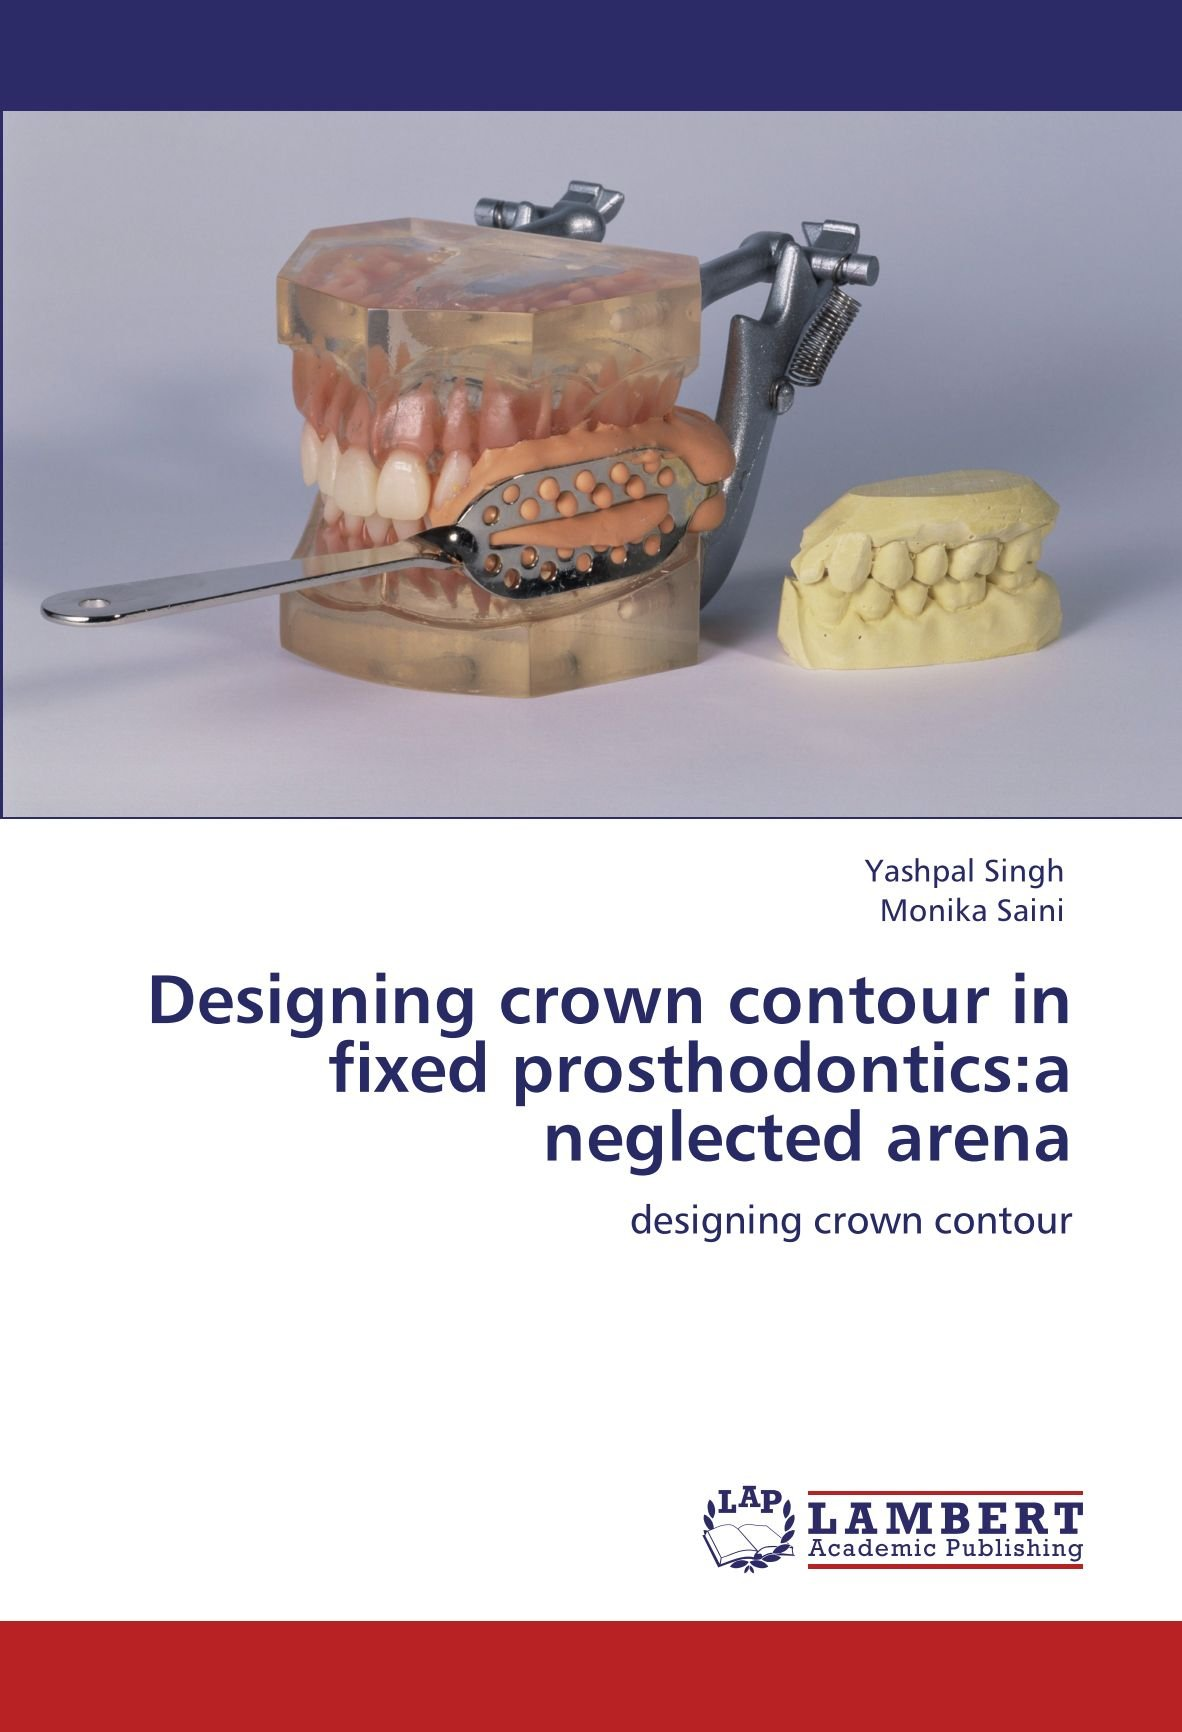 Designing crown contour in fixed prosthodontics:a neglected arena: designing crown contour